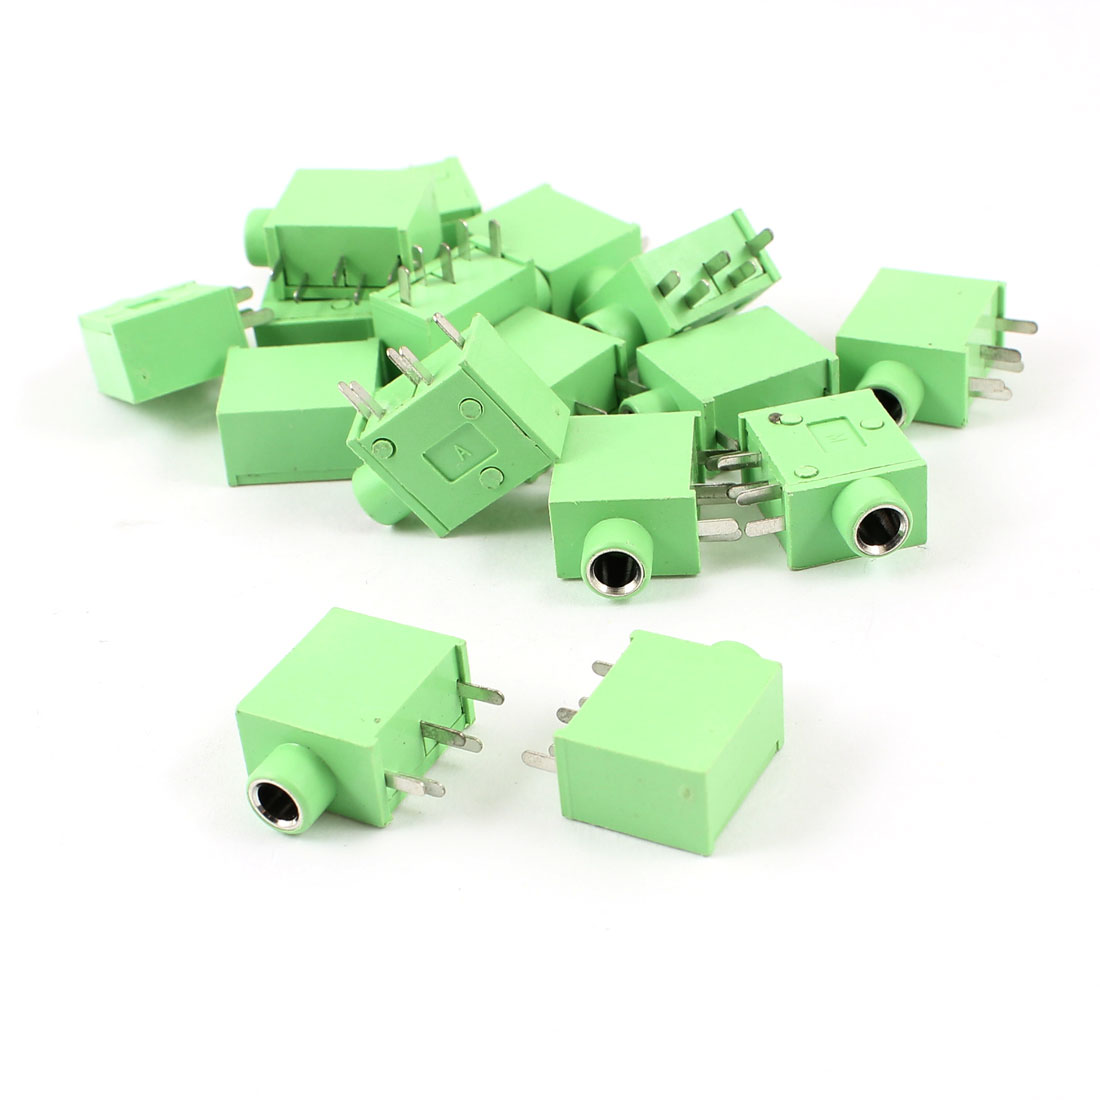 15 Pcs 5 Pin 3.5mm Female DIP Mounted Audio Stereo Jacks Socket Green for Headphone